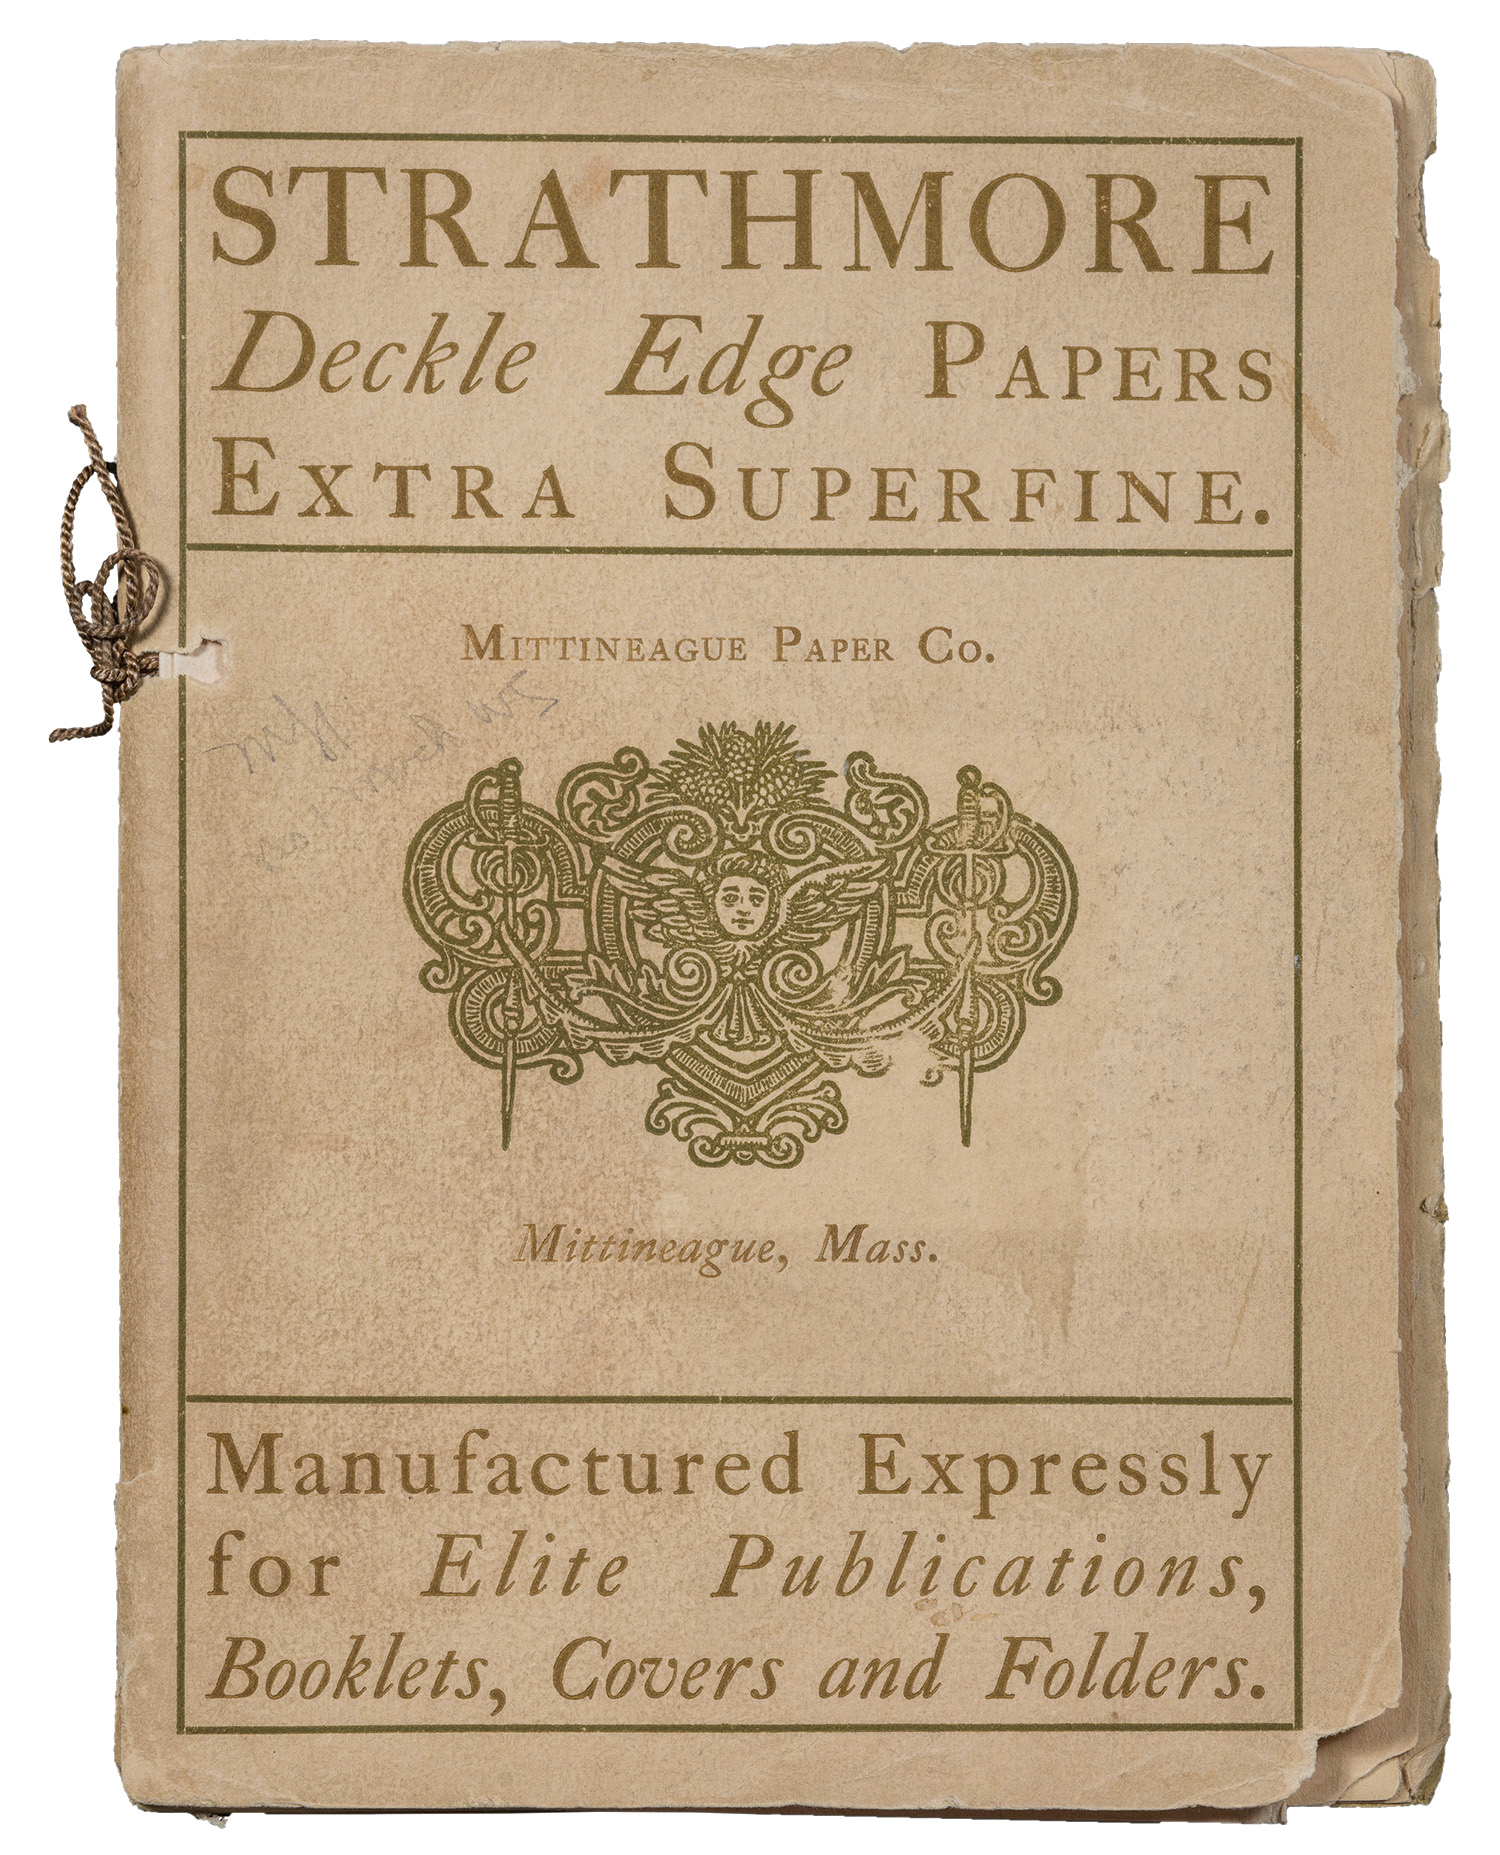 Strathmore Deckle Edge Paper. Design by Will Bradley.